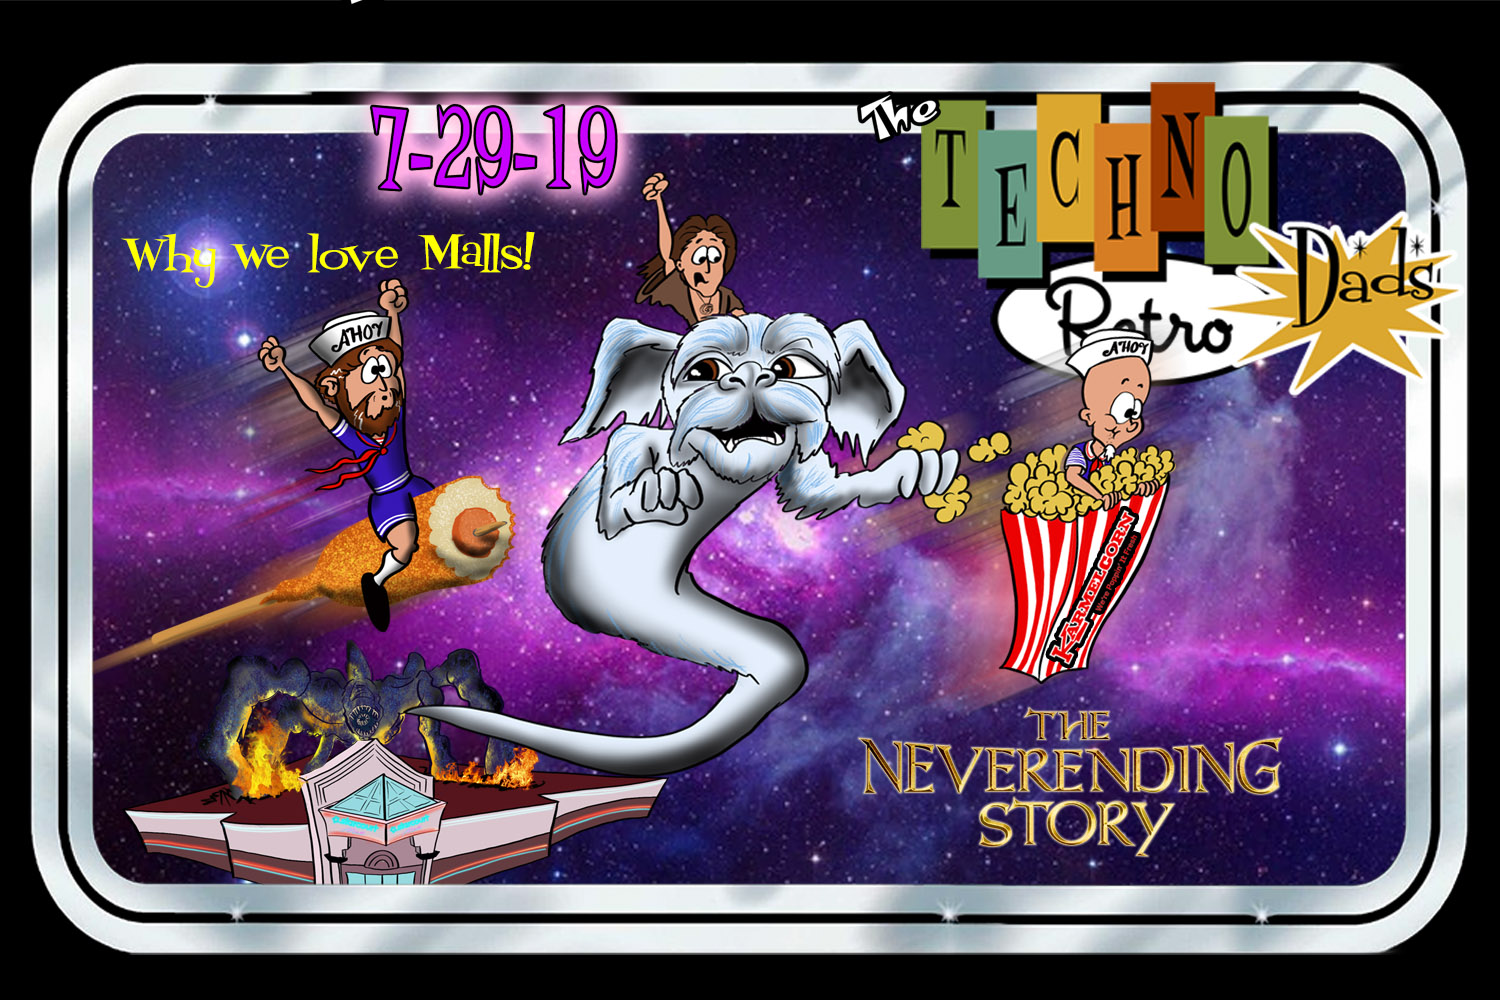 TechnoRetro Dads watch The NeverEnding Story at the RetroZap mall